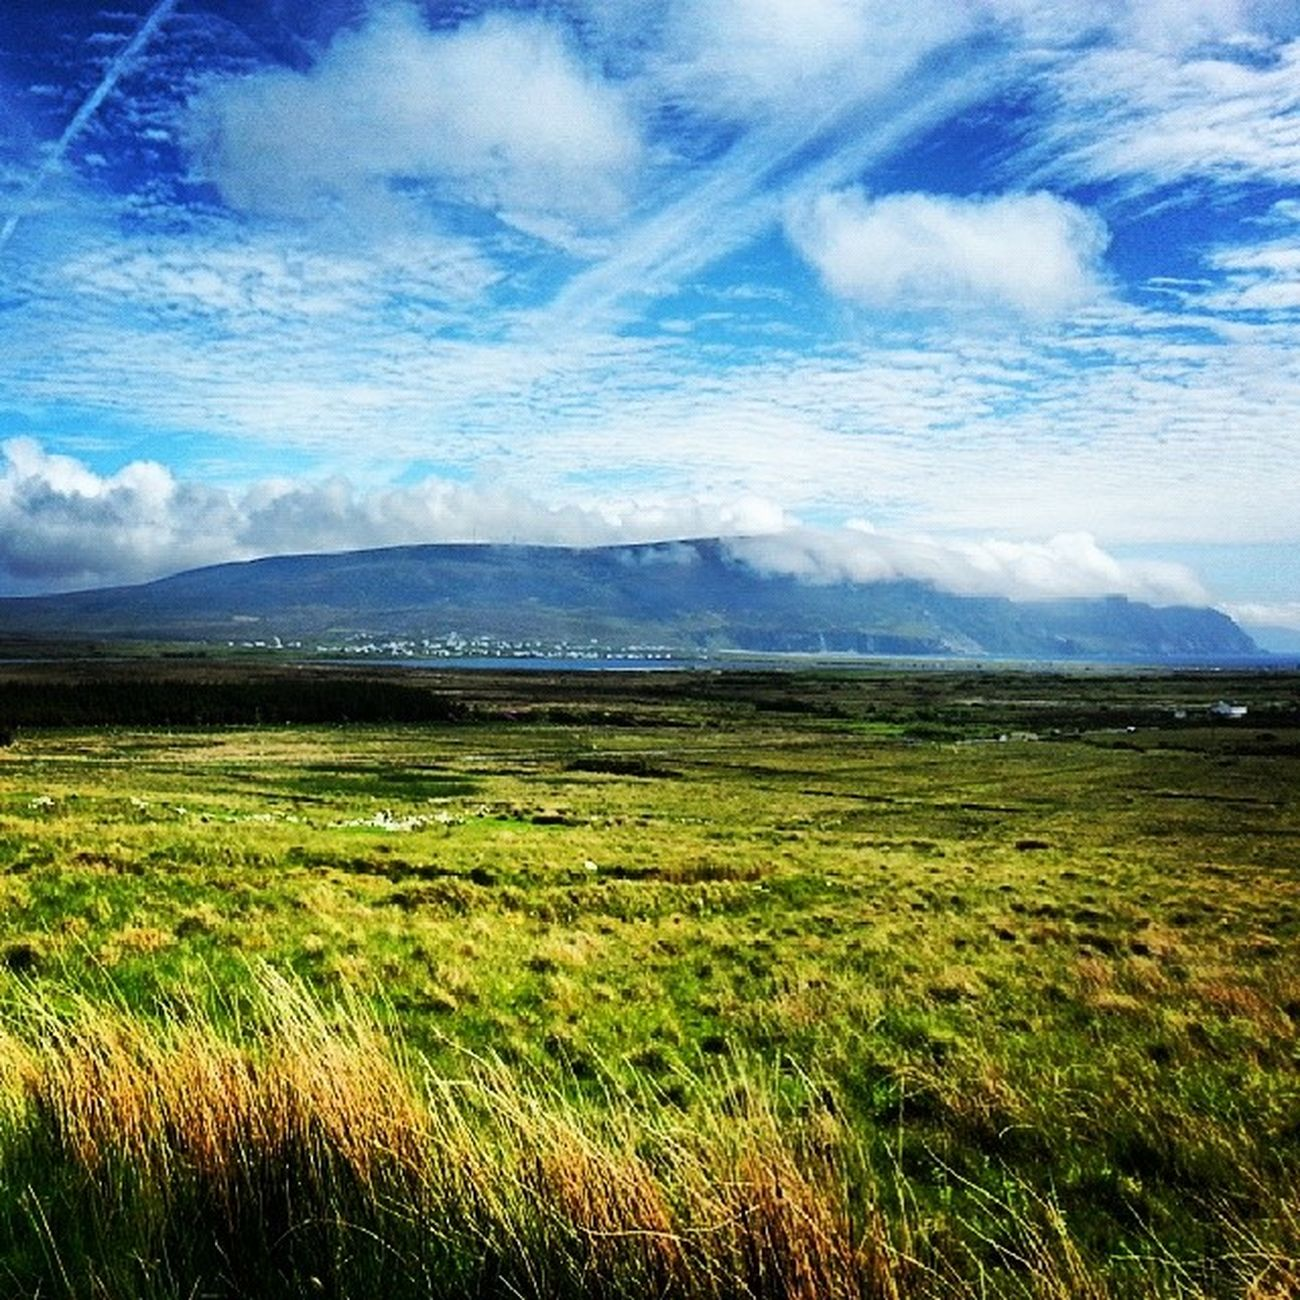 Tranquility Achill Countryside Beautiful Beach Desertedvillageachill Wildlife Scenery Nature History Irishcountryside Ireland Recharge Countrywalks Tranquillity WestOfIreland Outdoors Blueskies Perfectday